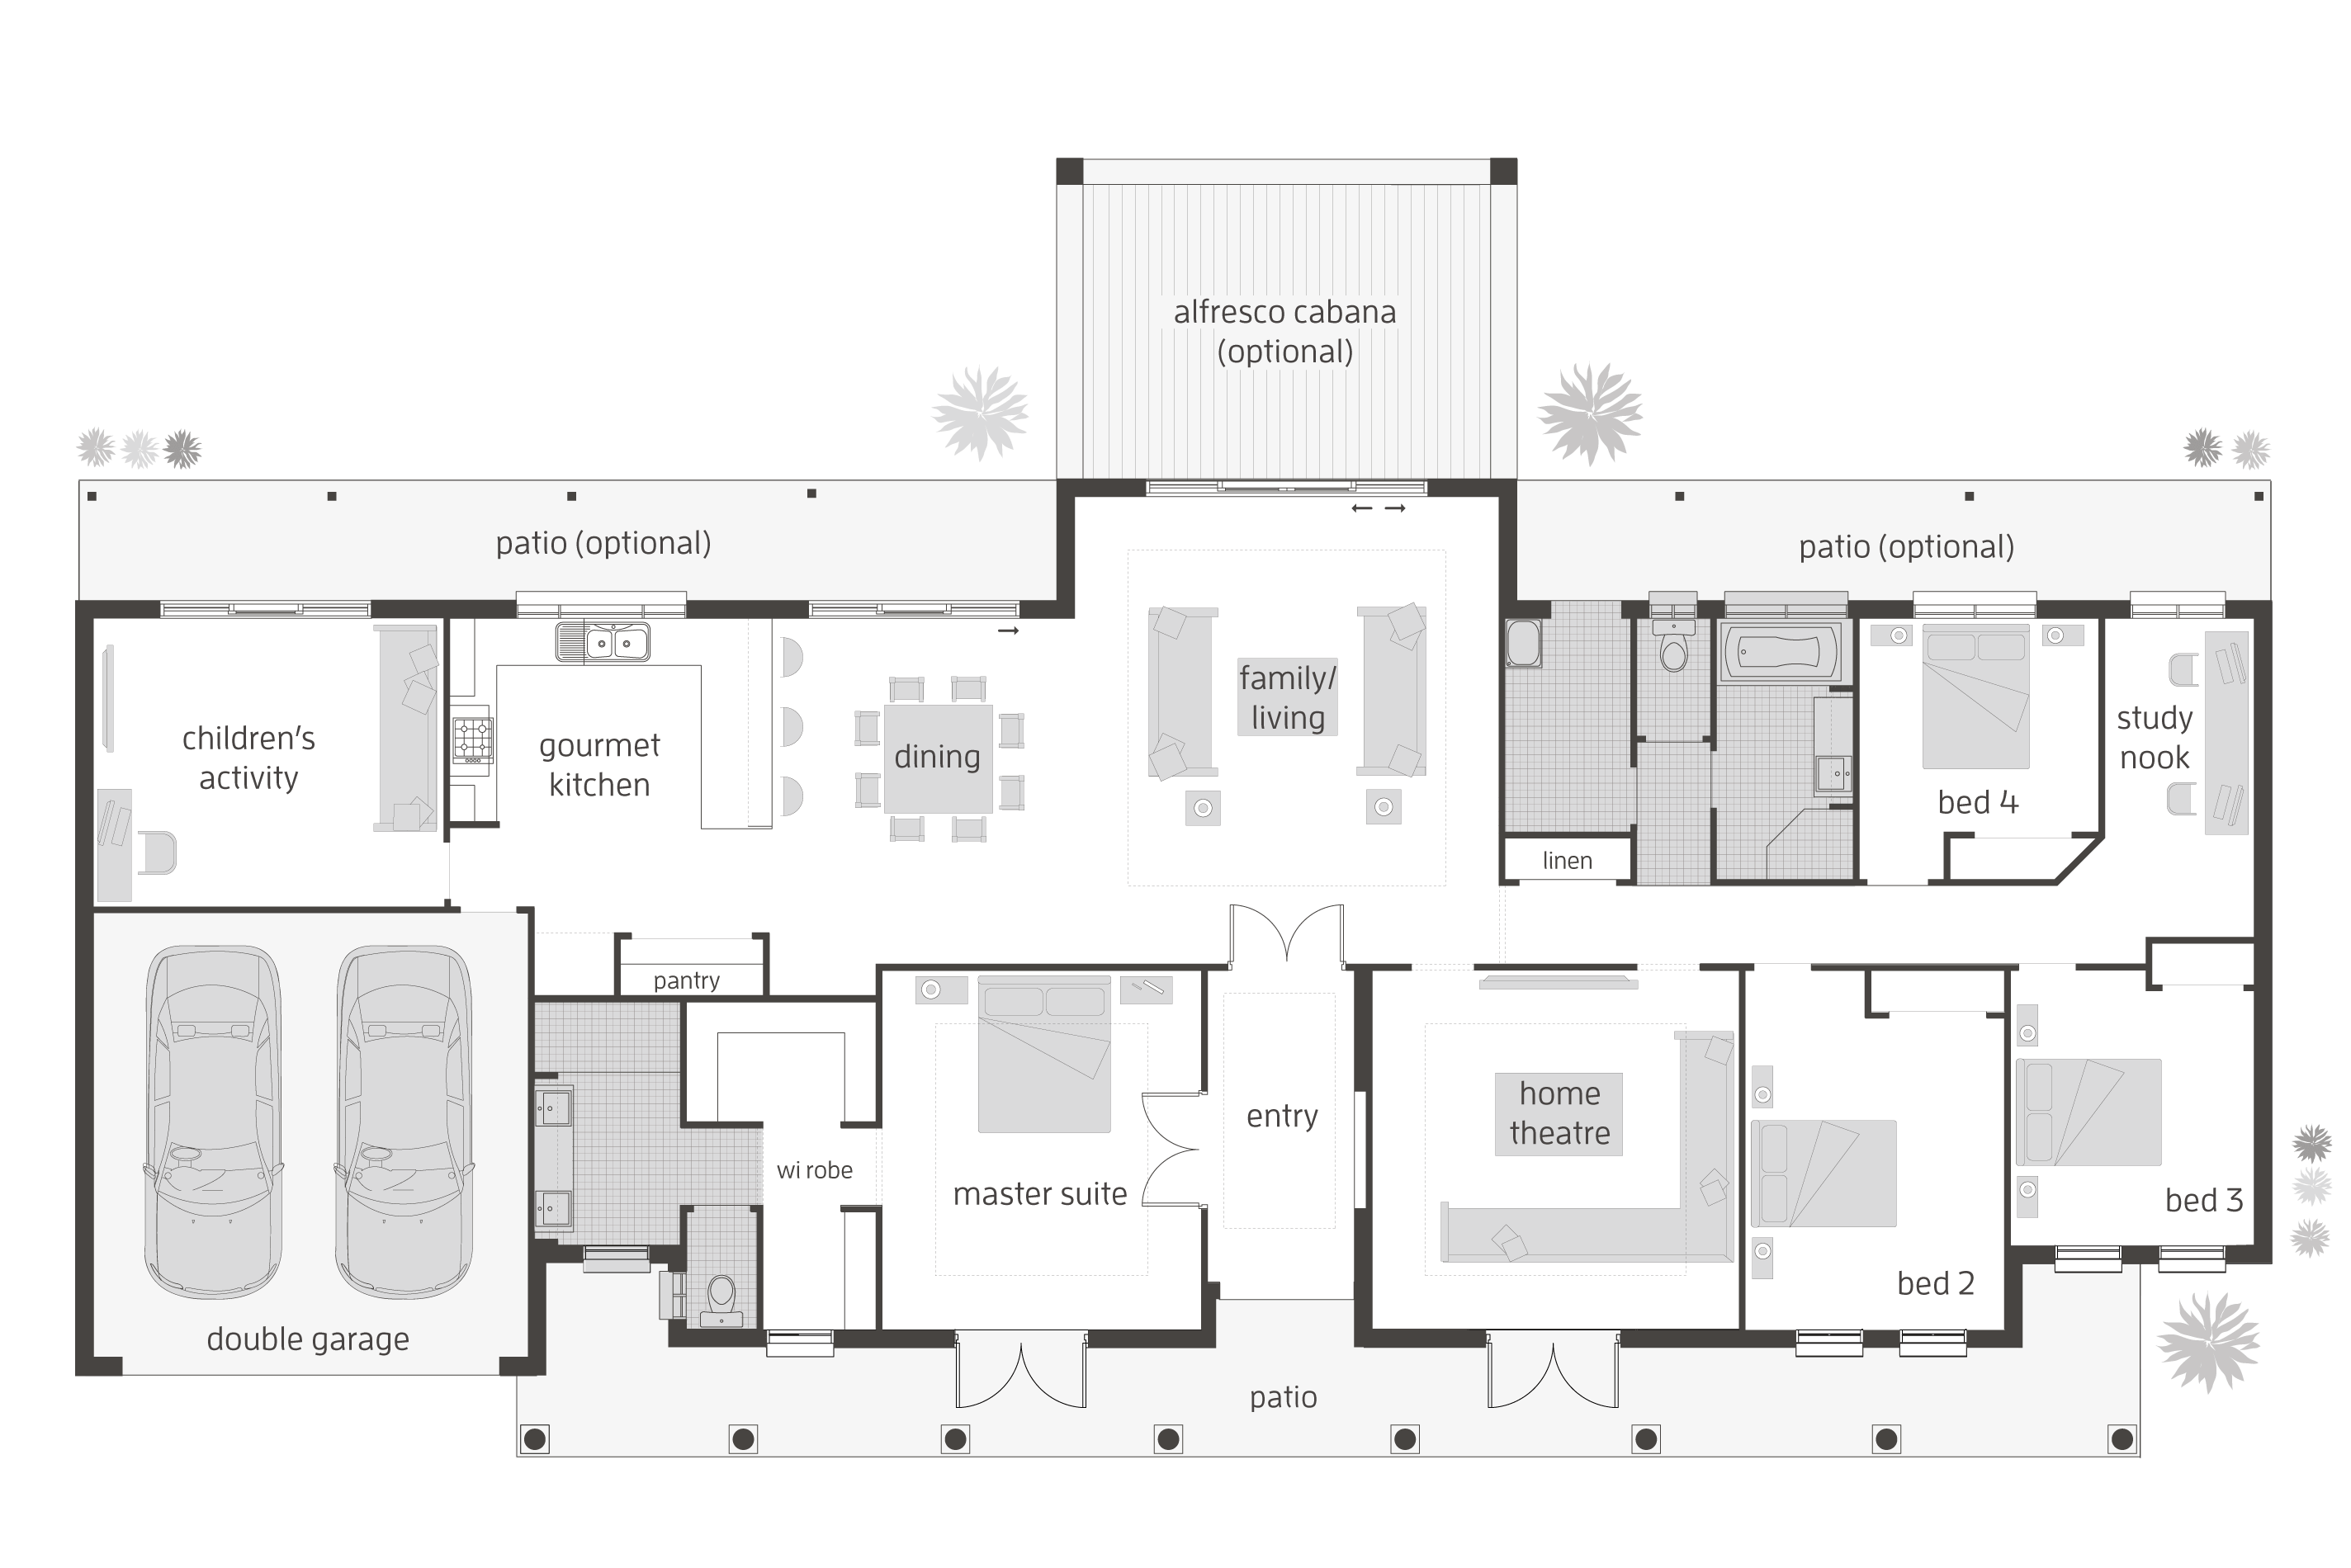 Floor plan friday 4 bedroom children 39 s activity room for 4 bedroom house plans ireland